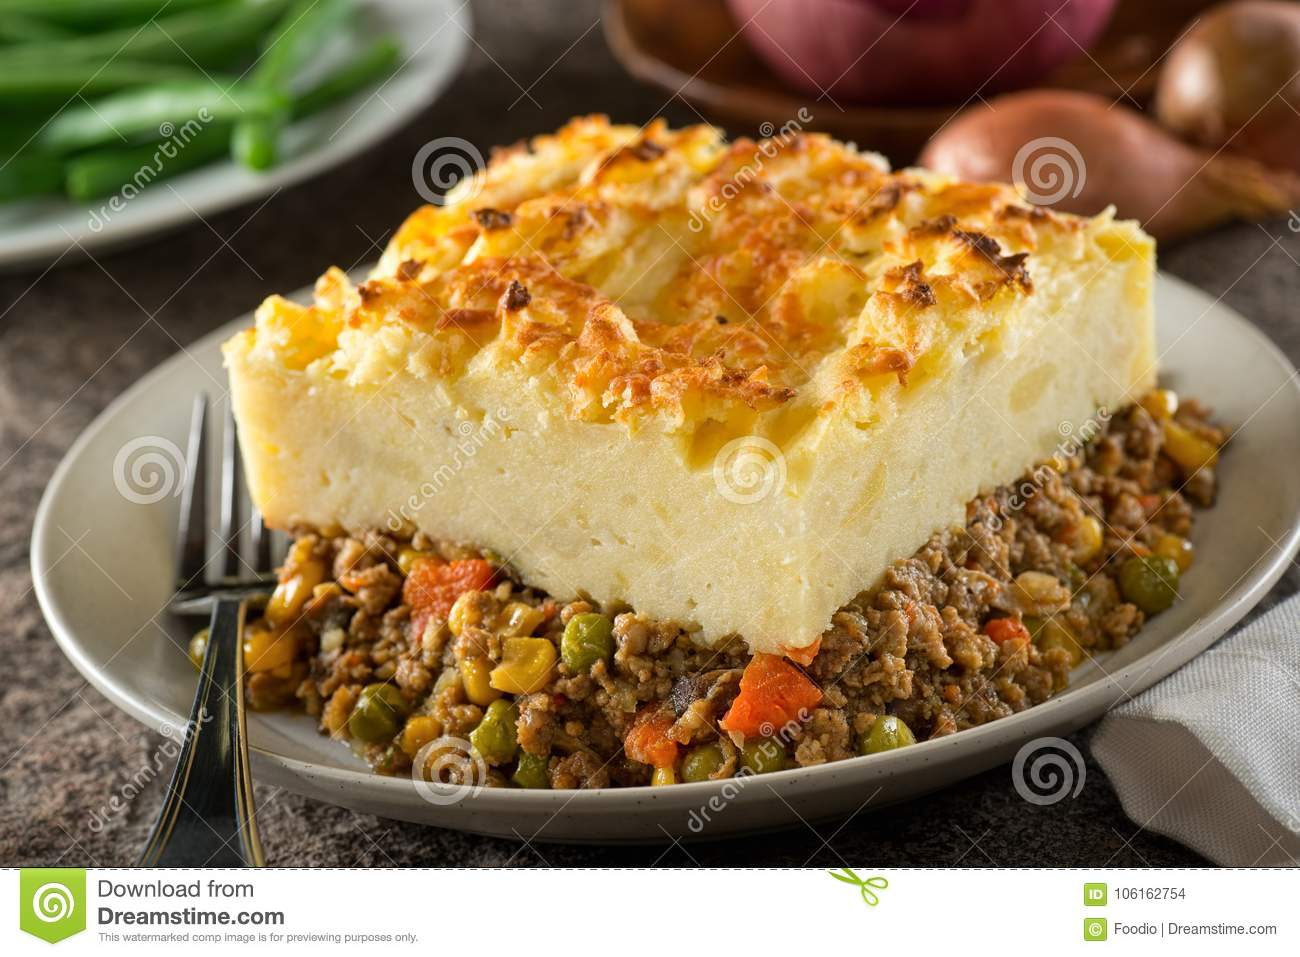 A serving of delicious homemade shepherds pie.